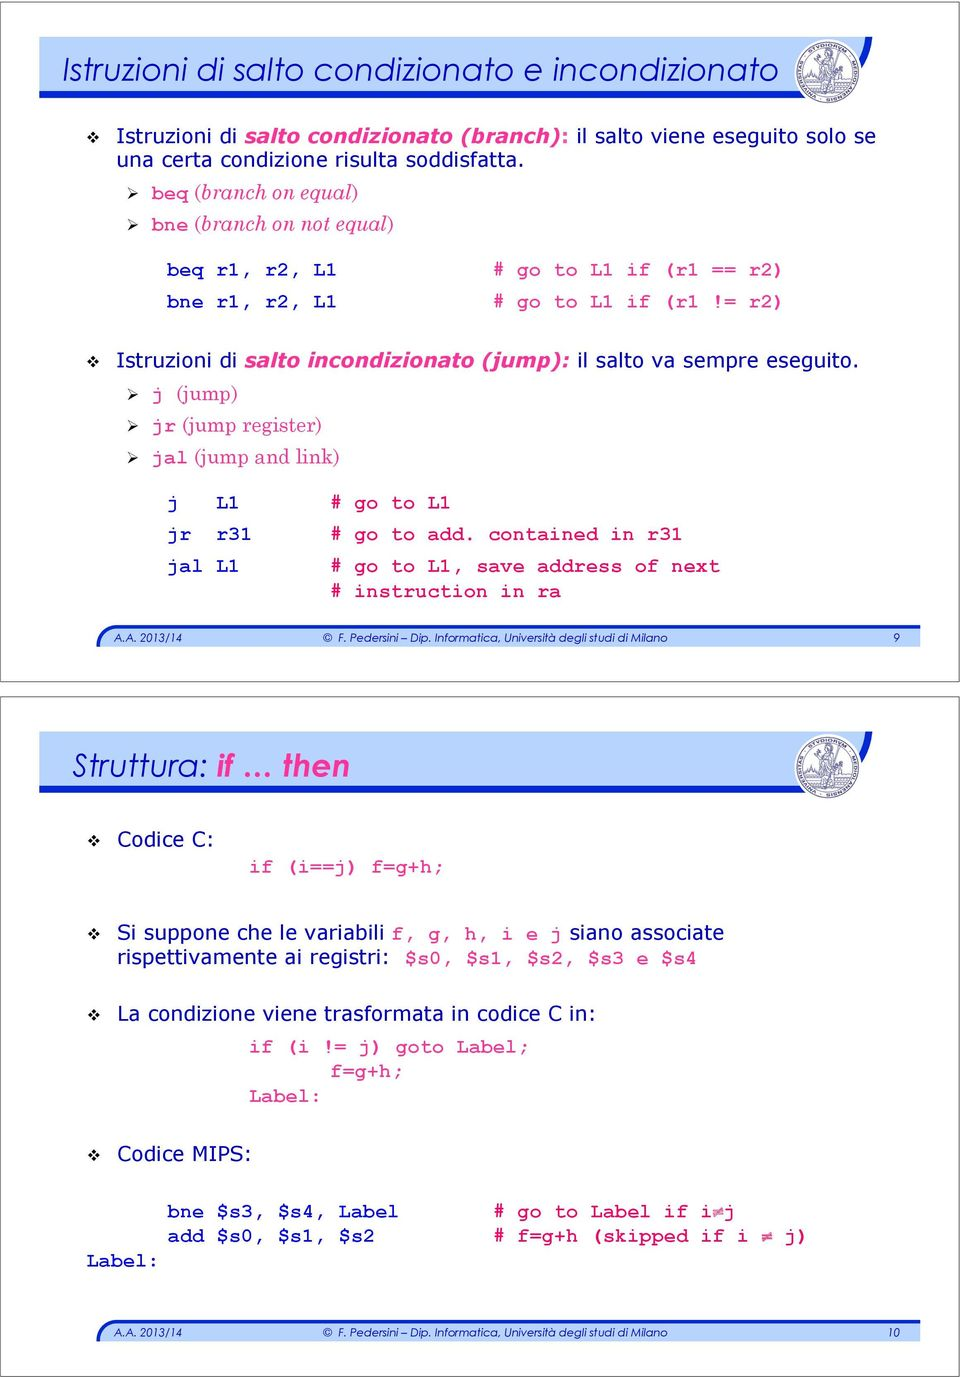 """ j (jump) "" jr (jump register) "" jal (jump and link)!!j L1 # go to L1 jr r31 # go to add. contained in r31 jal L1 # go to L1, save address of next # instruction in ra 9 Struttura: if then!"